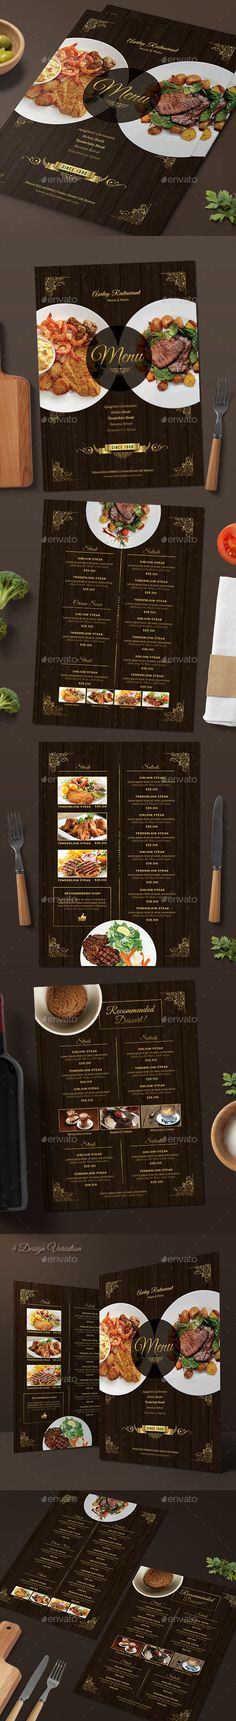 Elegant Restaurant Menu - Food Menus Print Templates | Download: https://graphicriver.net/item/elegant-restaurant-menu/18590107?ref=sinzo